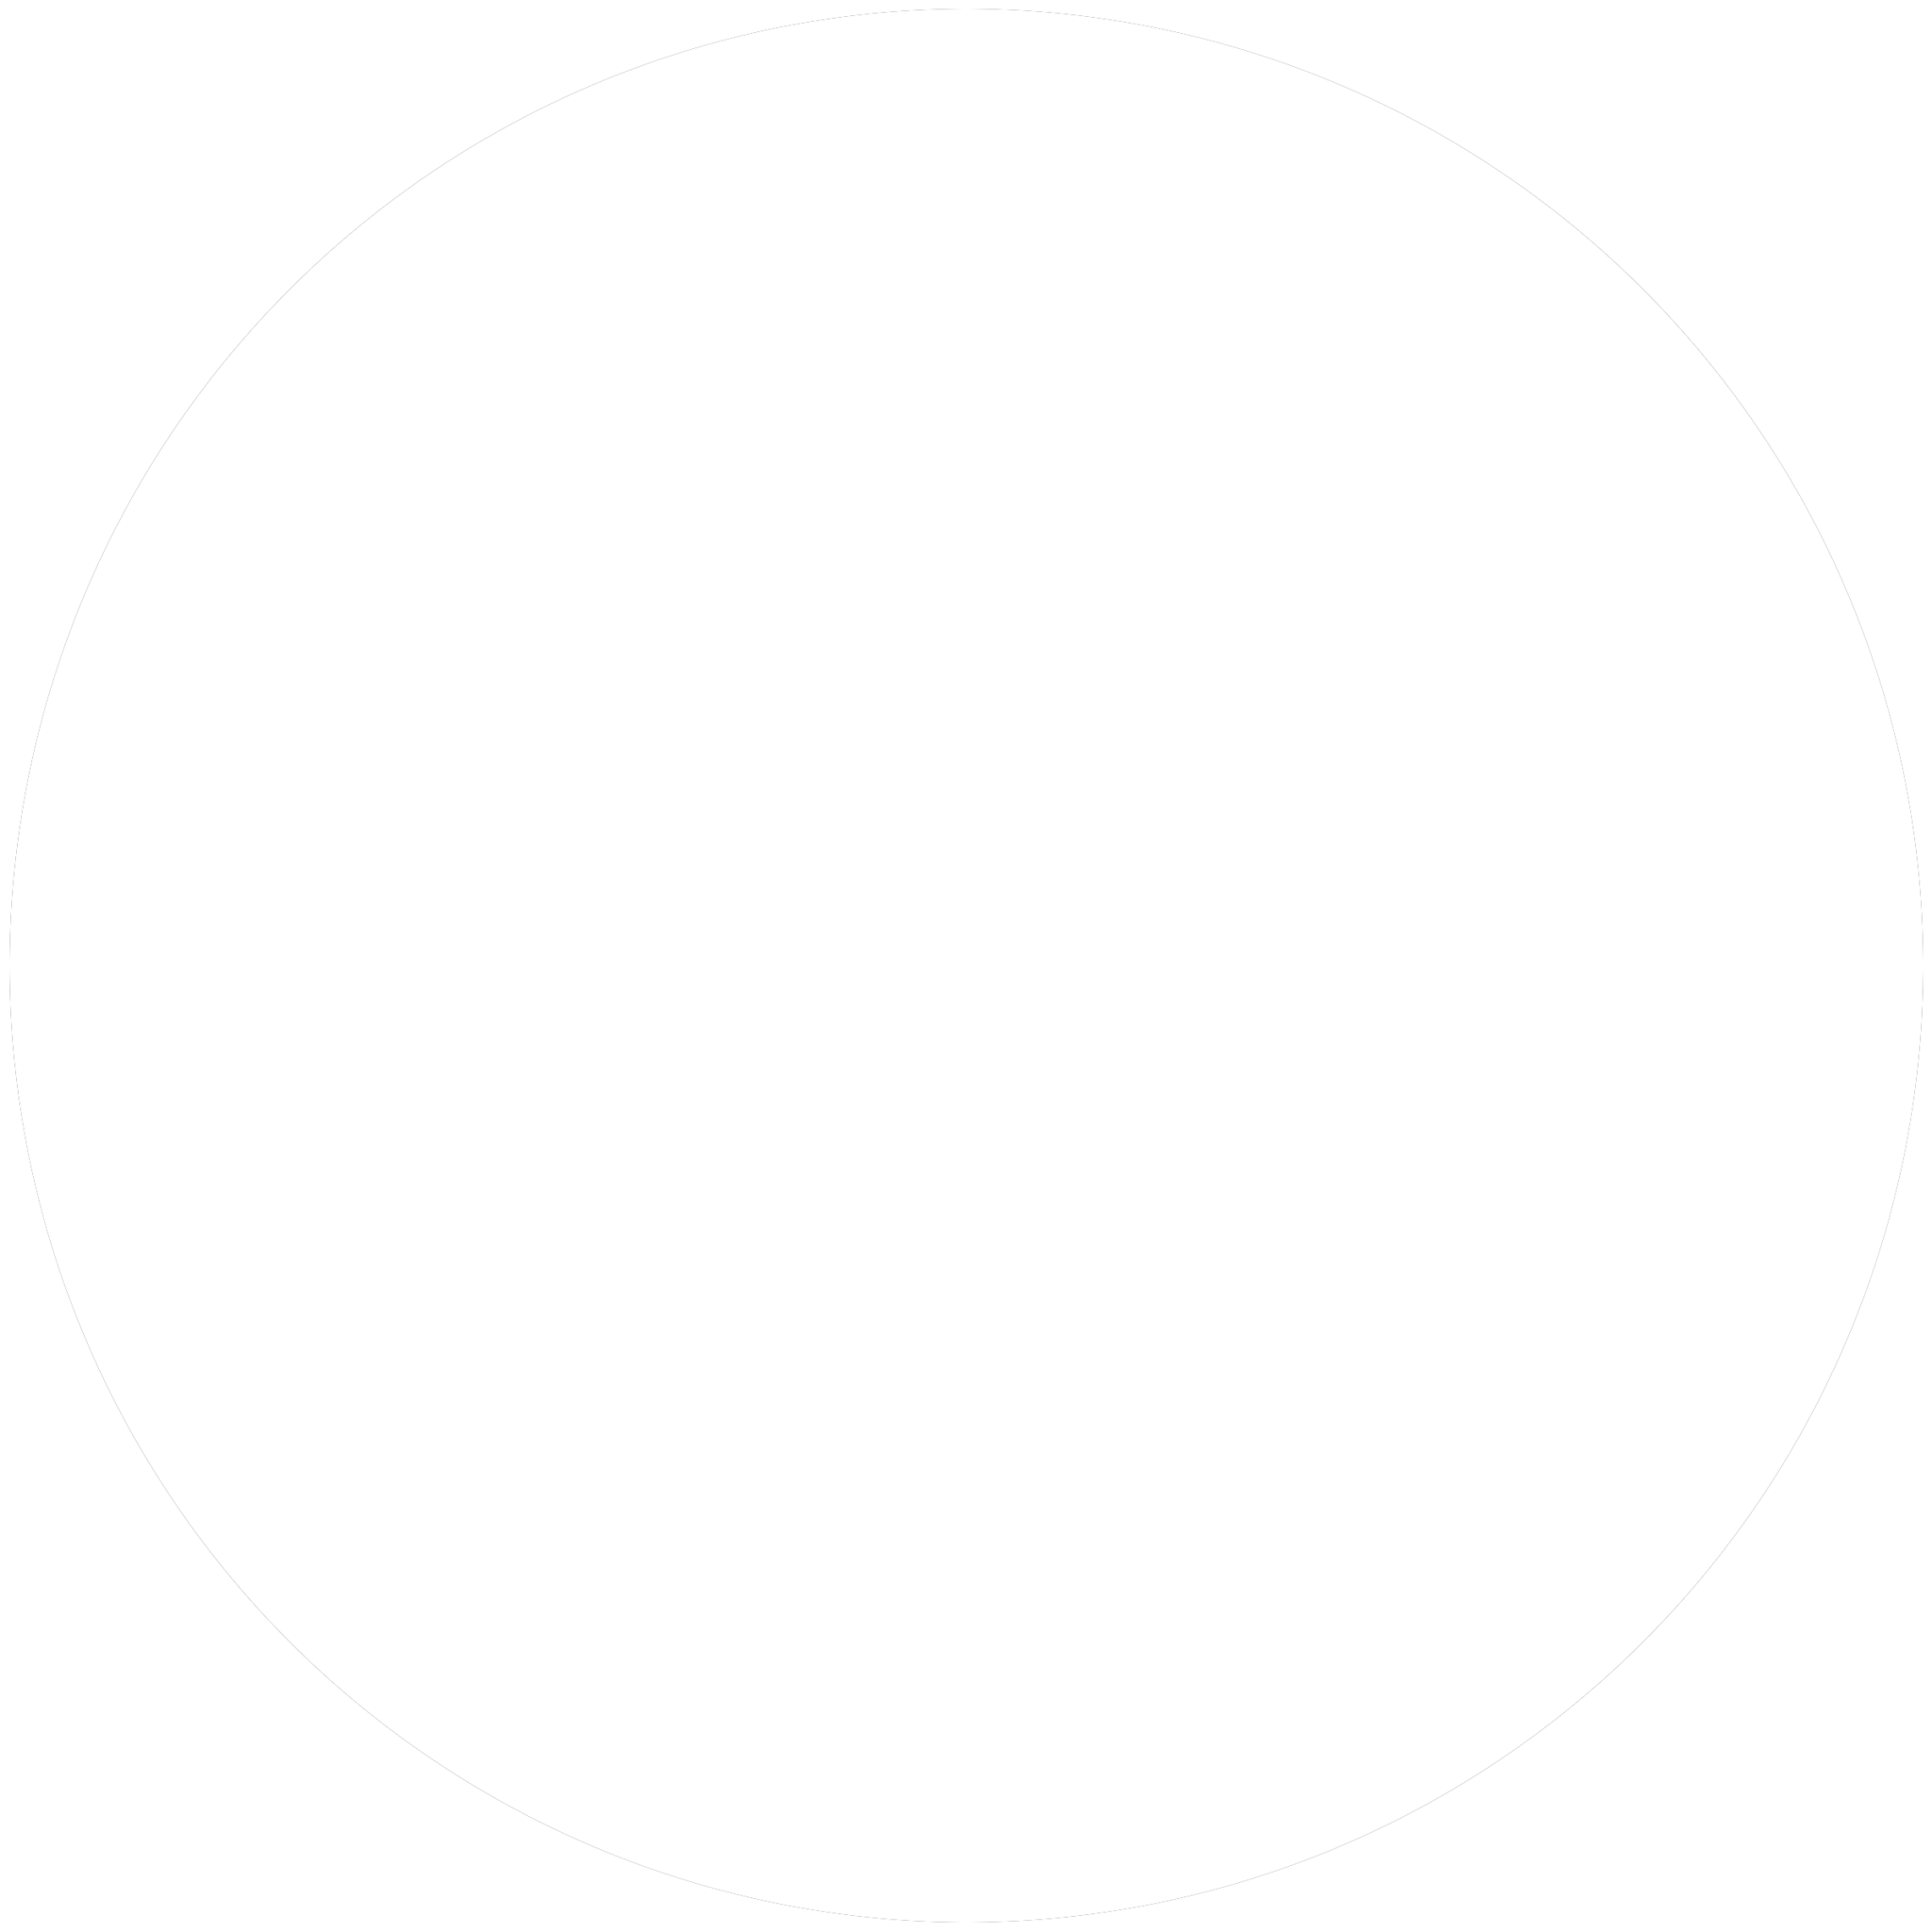 Draft Therapy Logo - Youtube